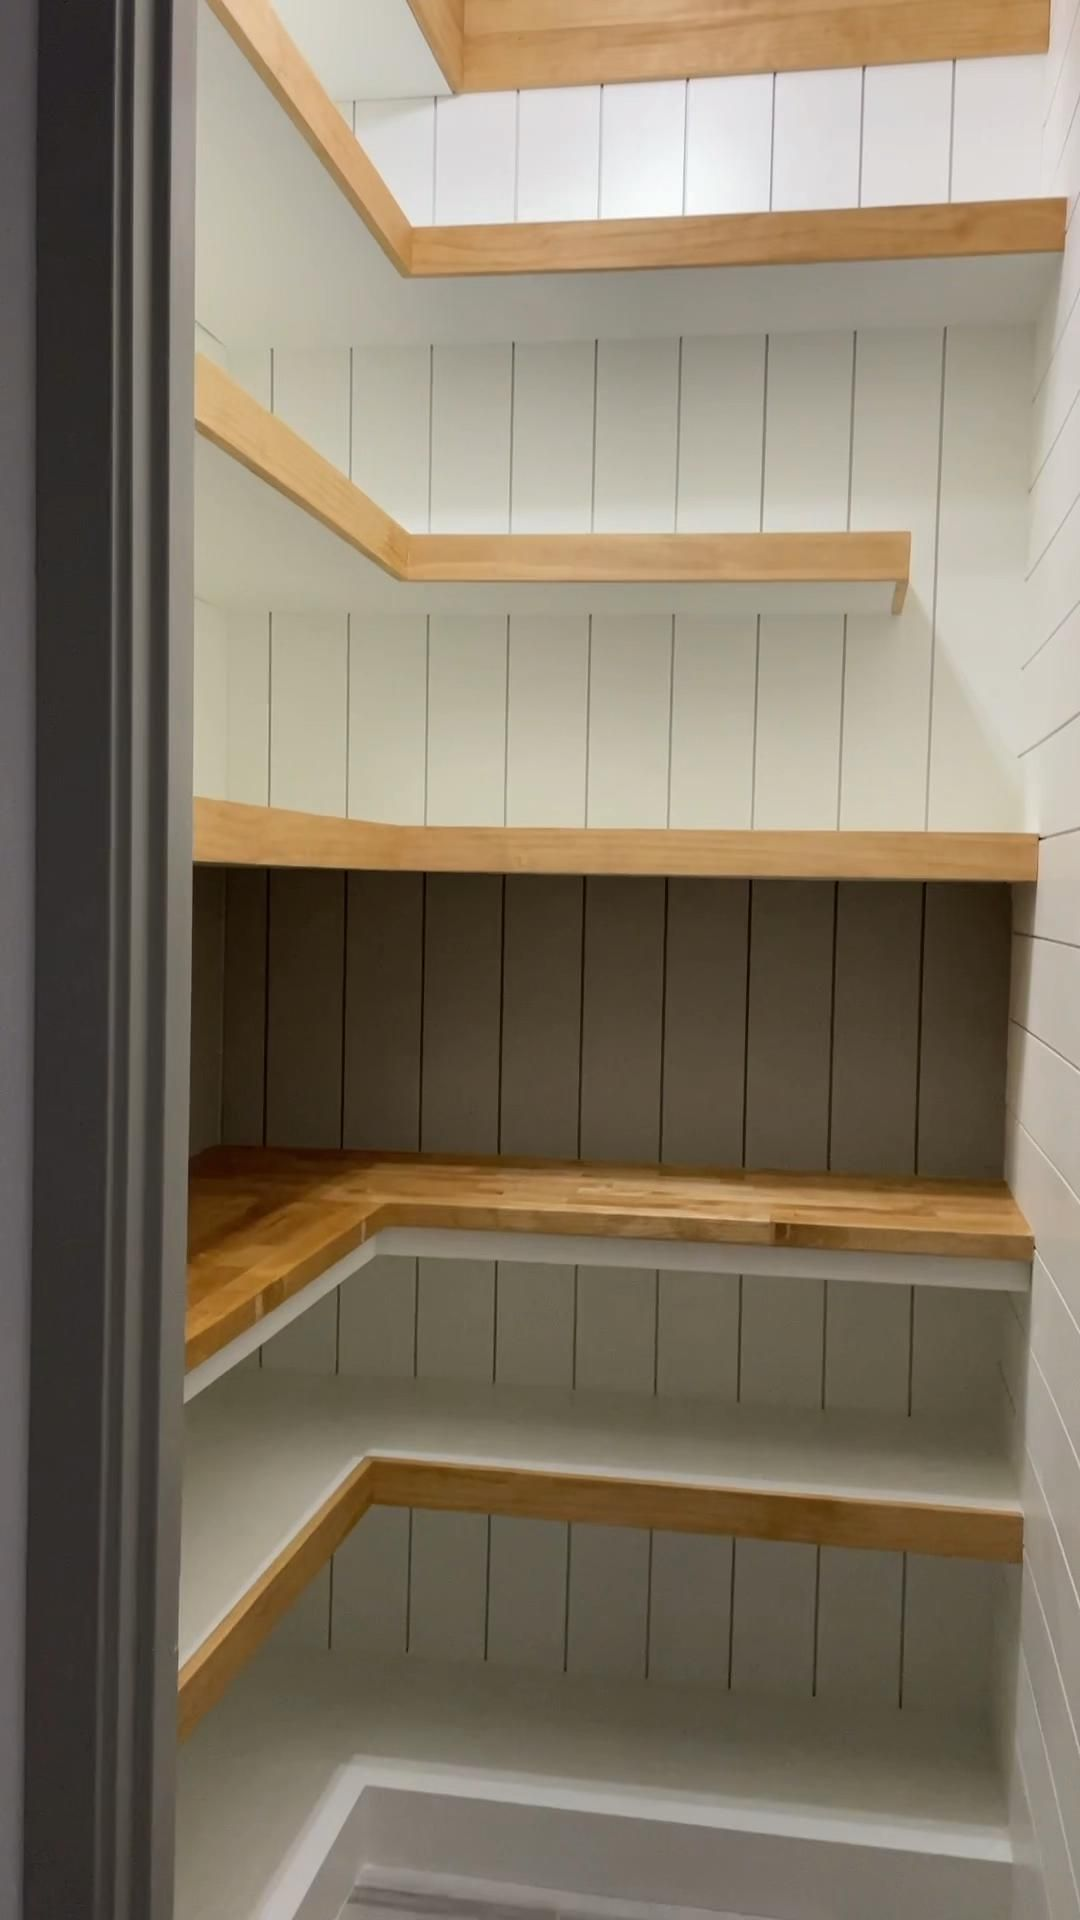 The Best Upgrades We Made in Our DIY Pantry